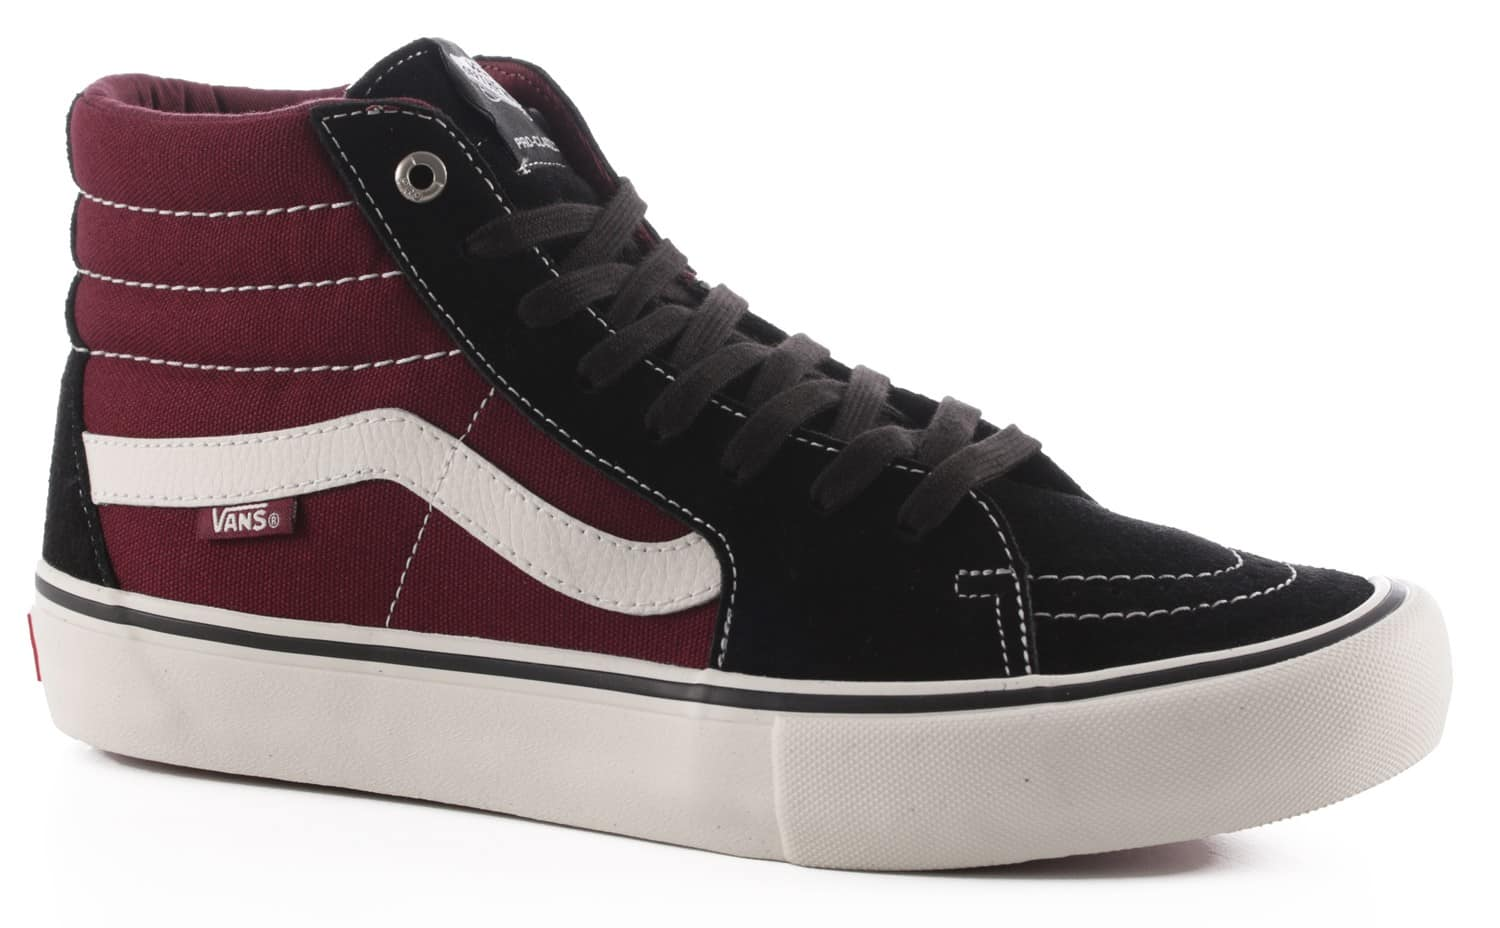 Vans Skate Shoes On Sale